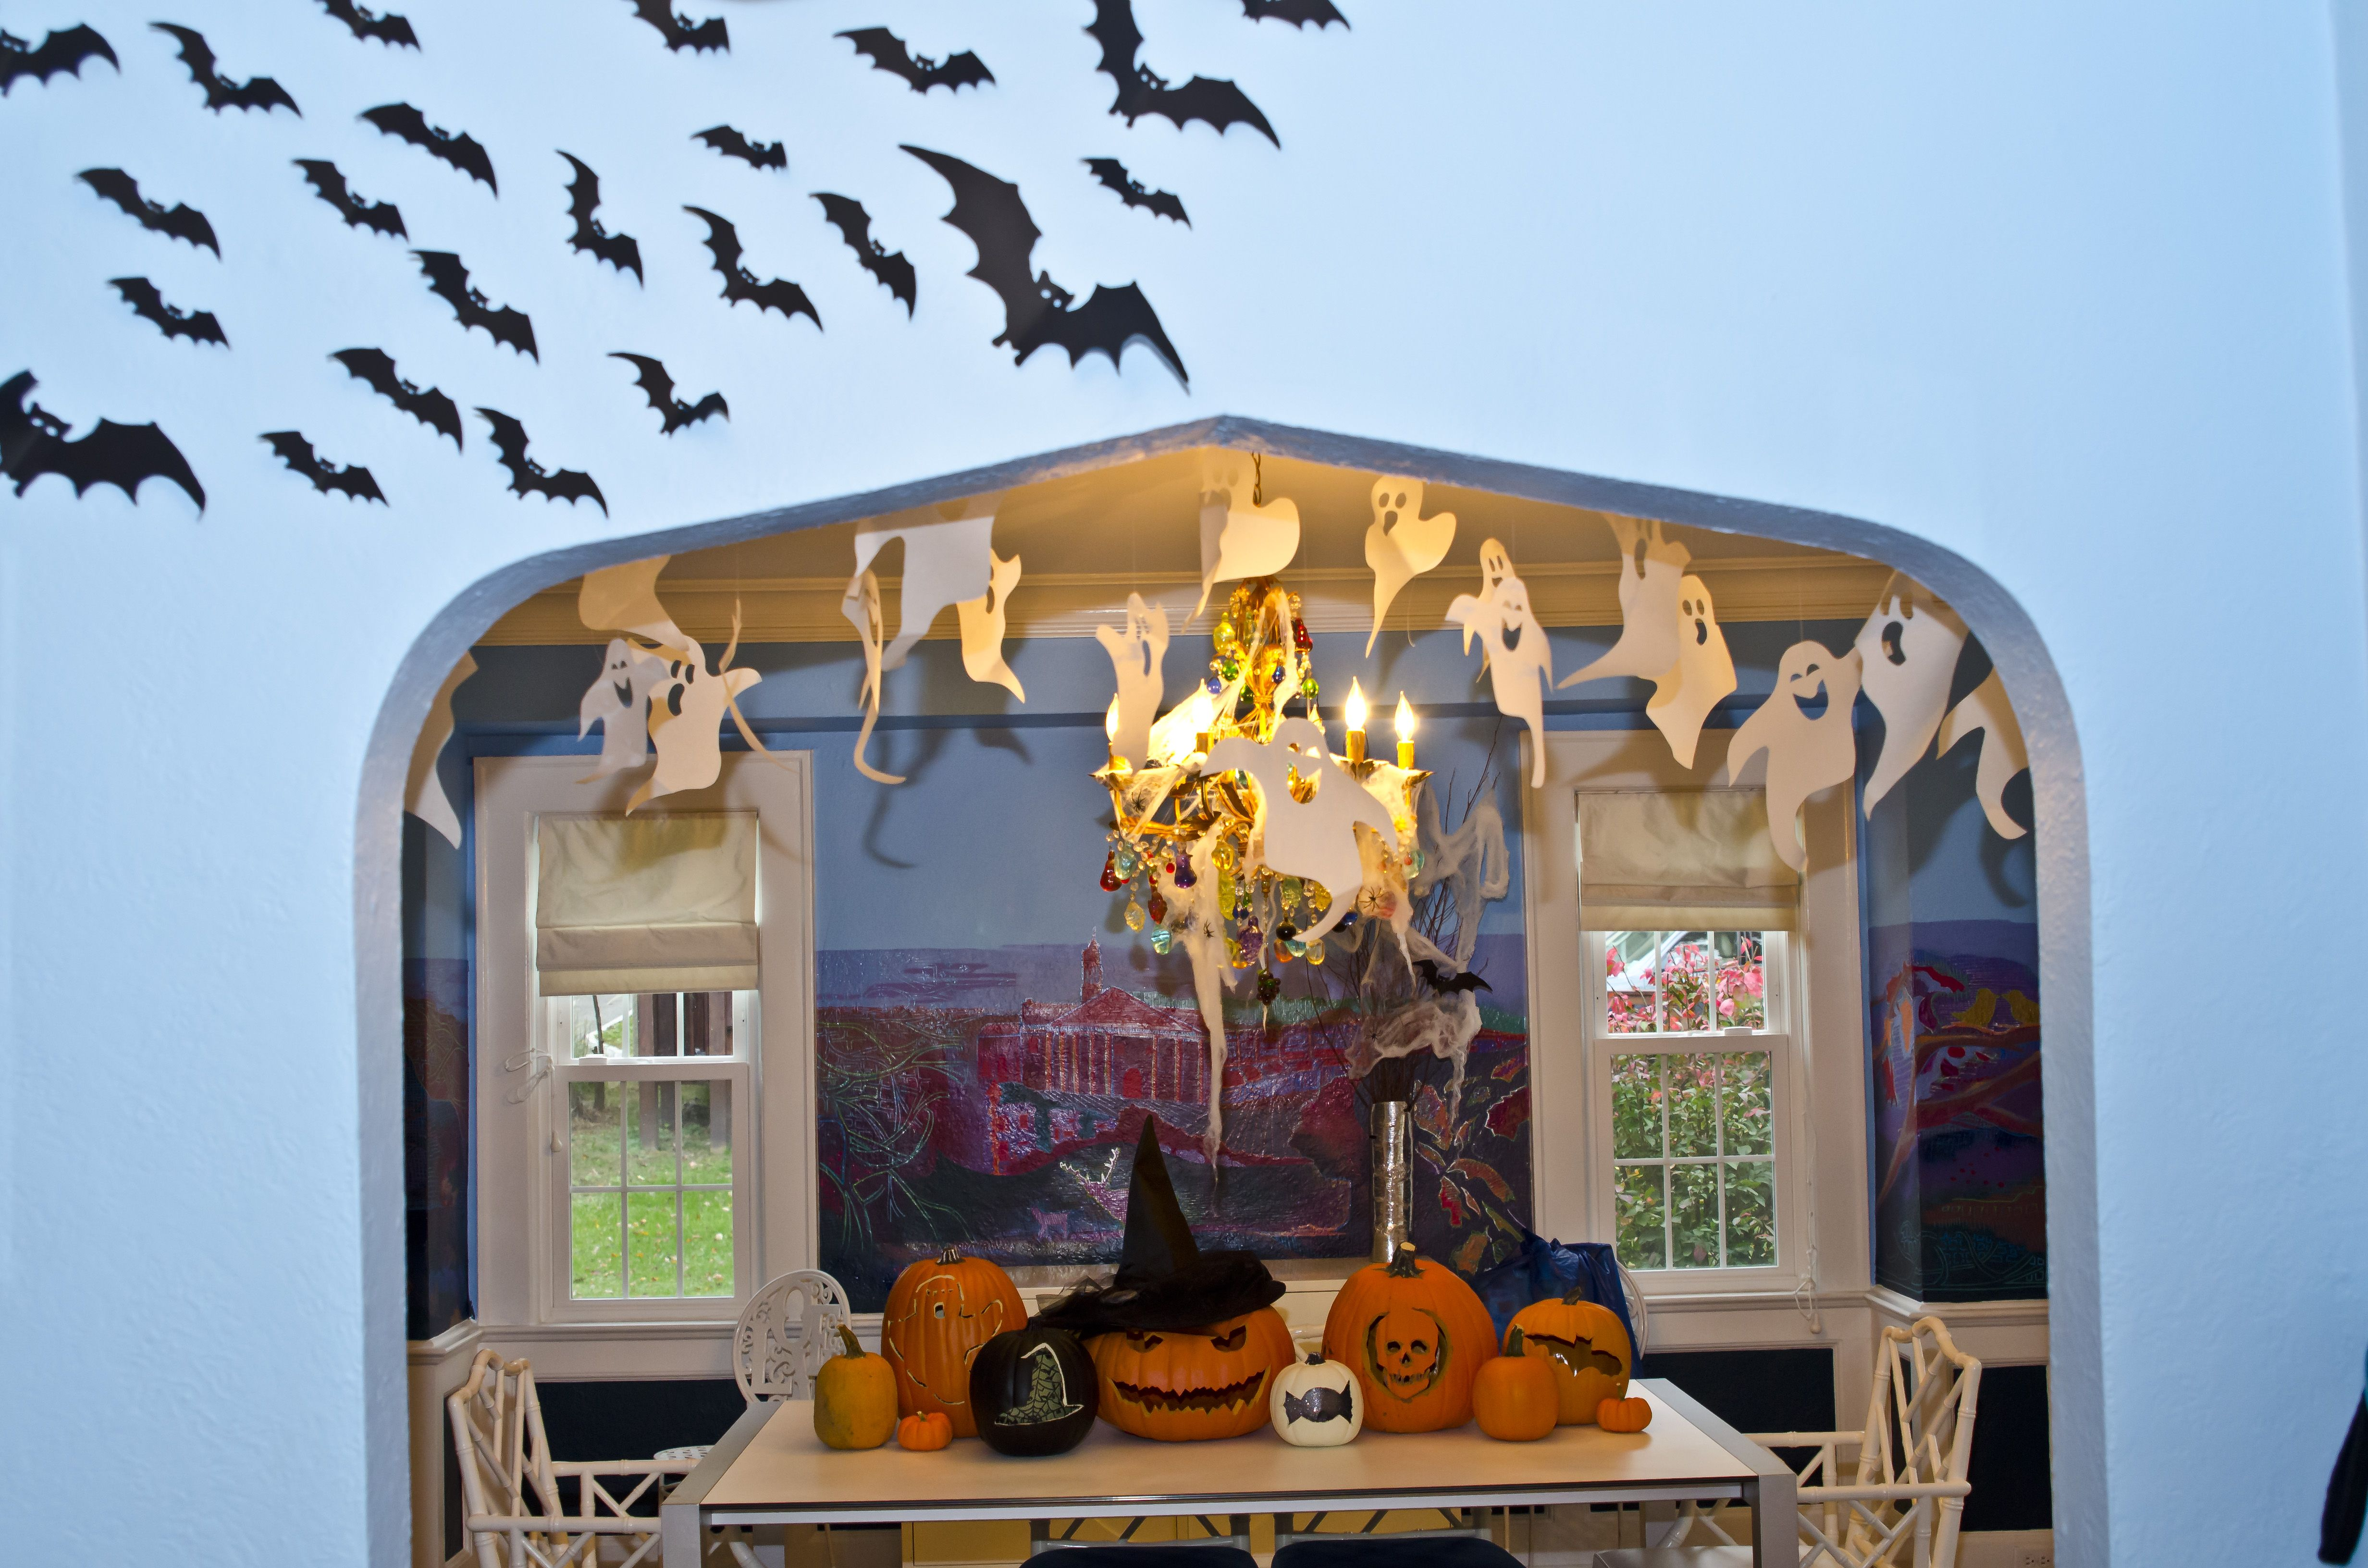 entry sony for indoor dsc halloween cathgrace decorations way decor front